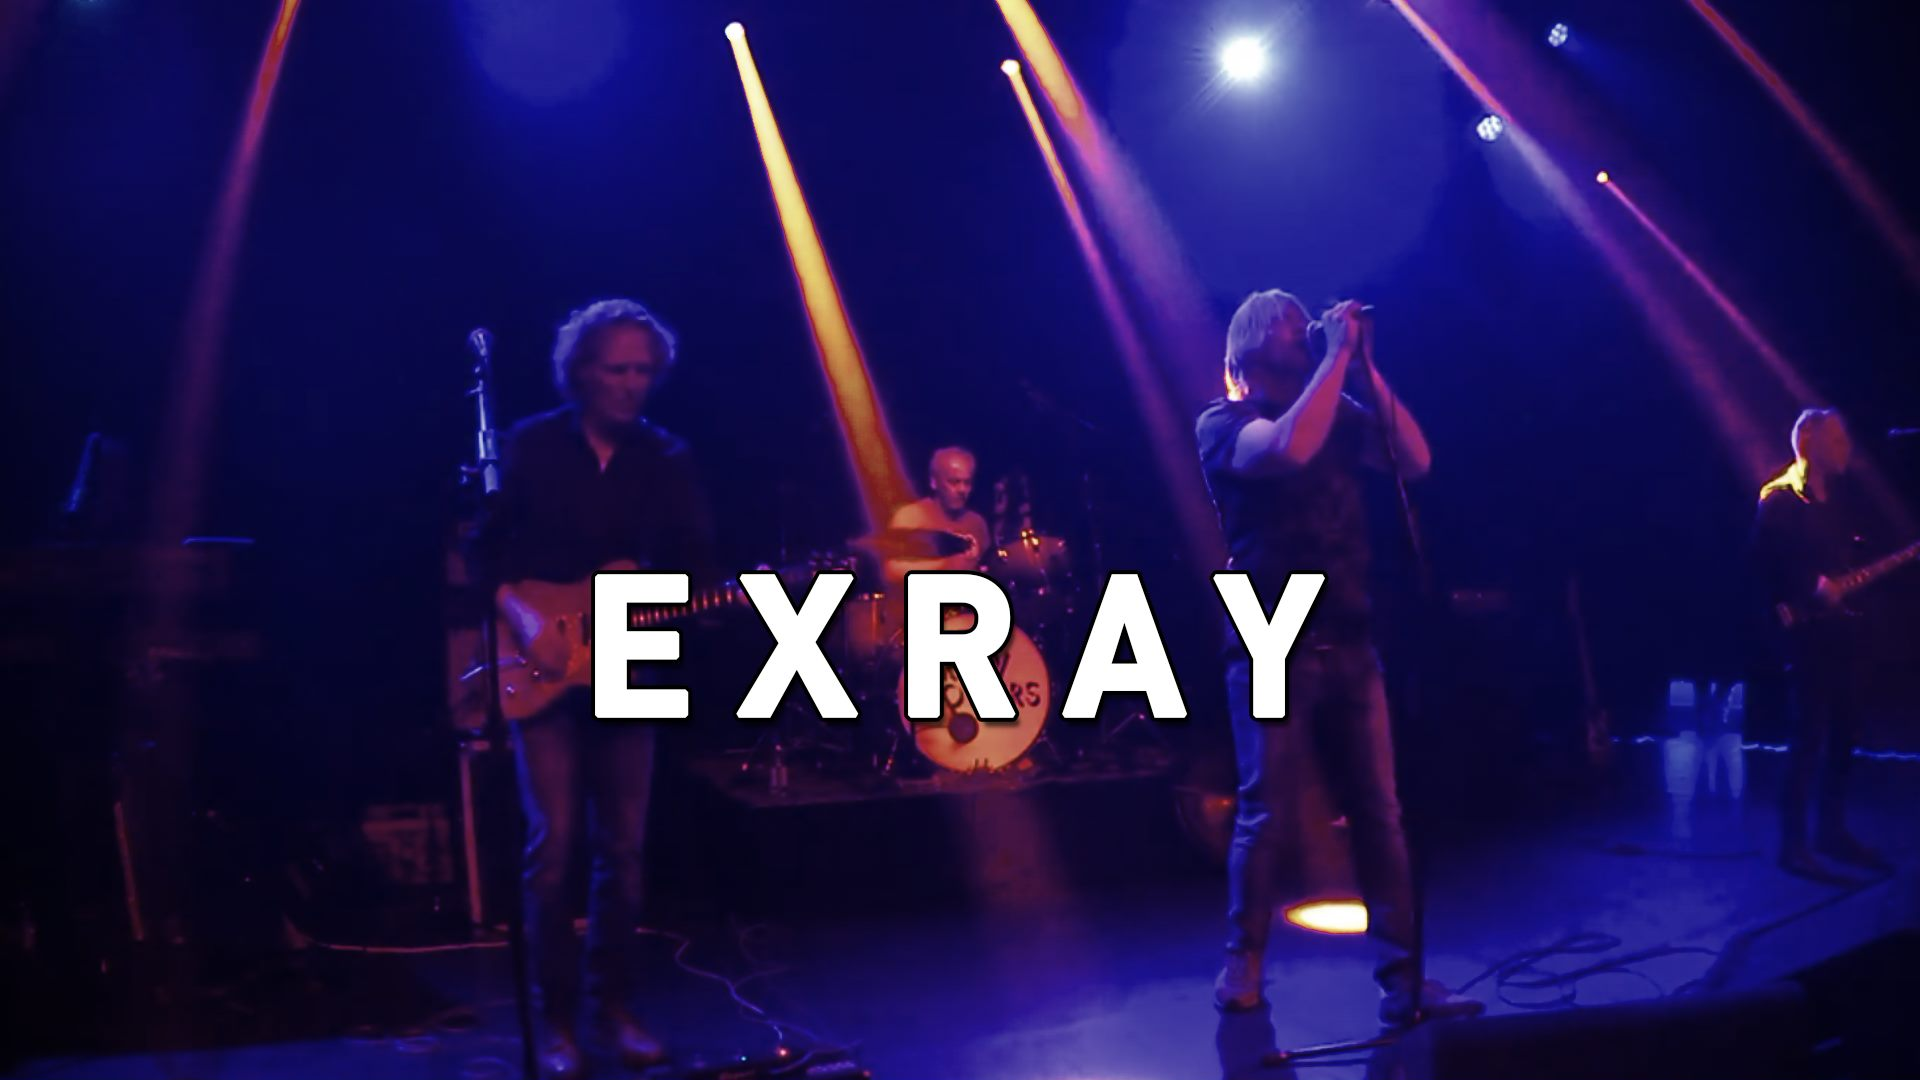 Exray